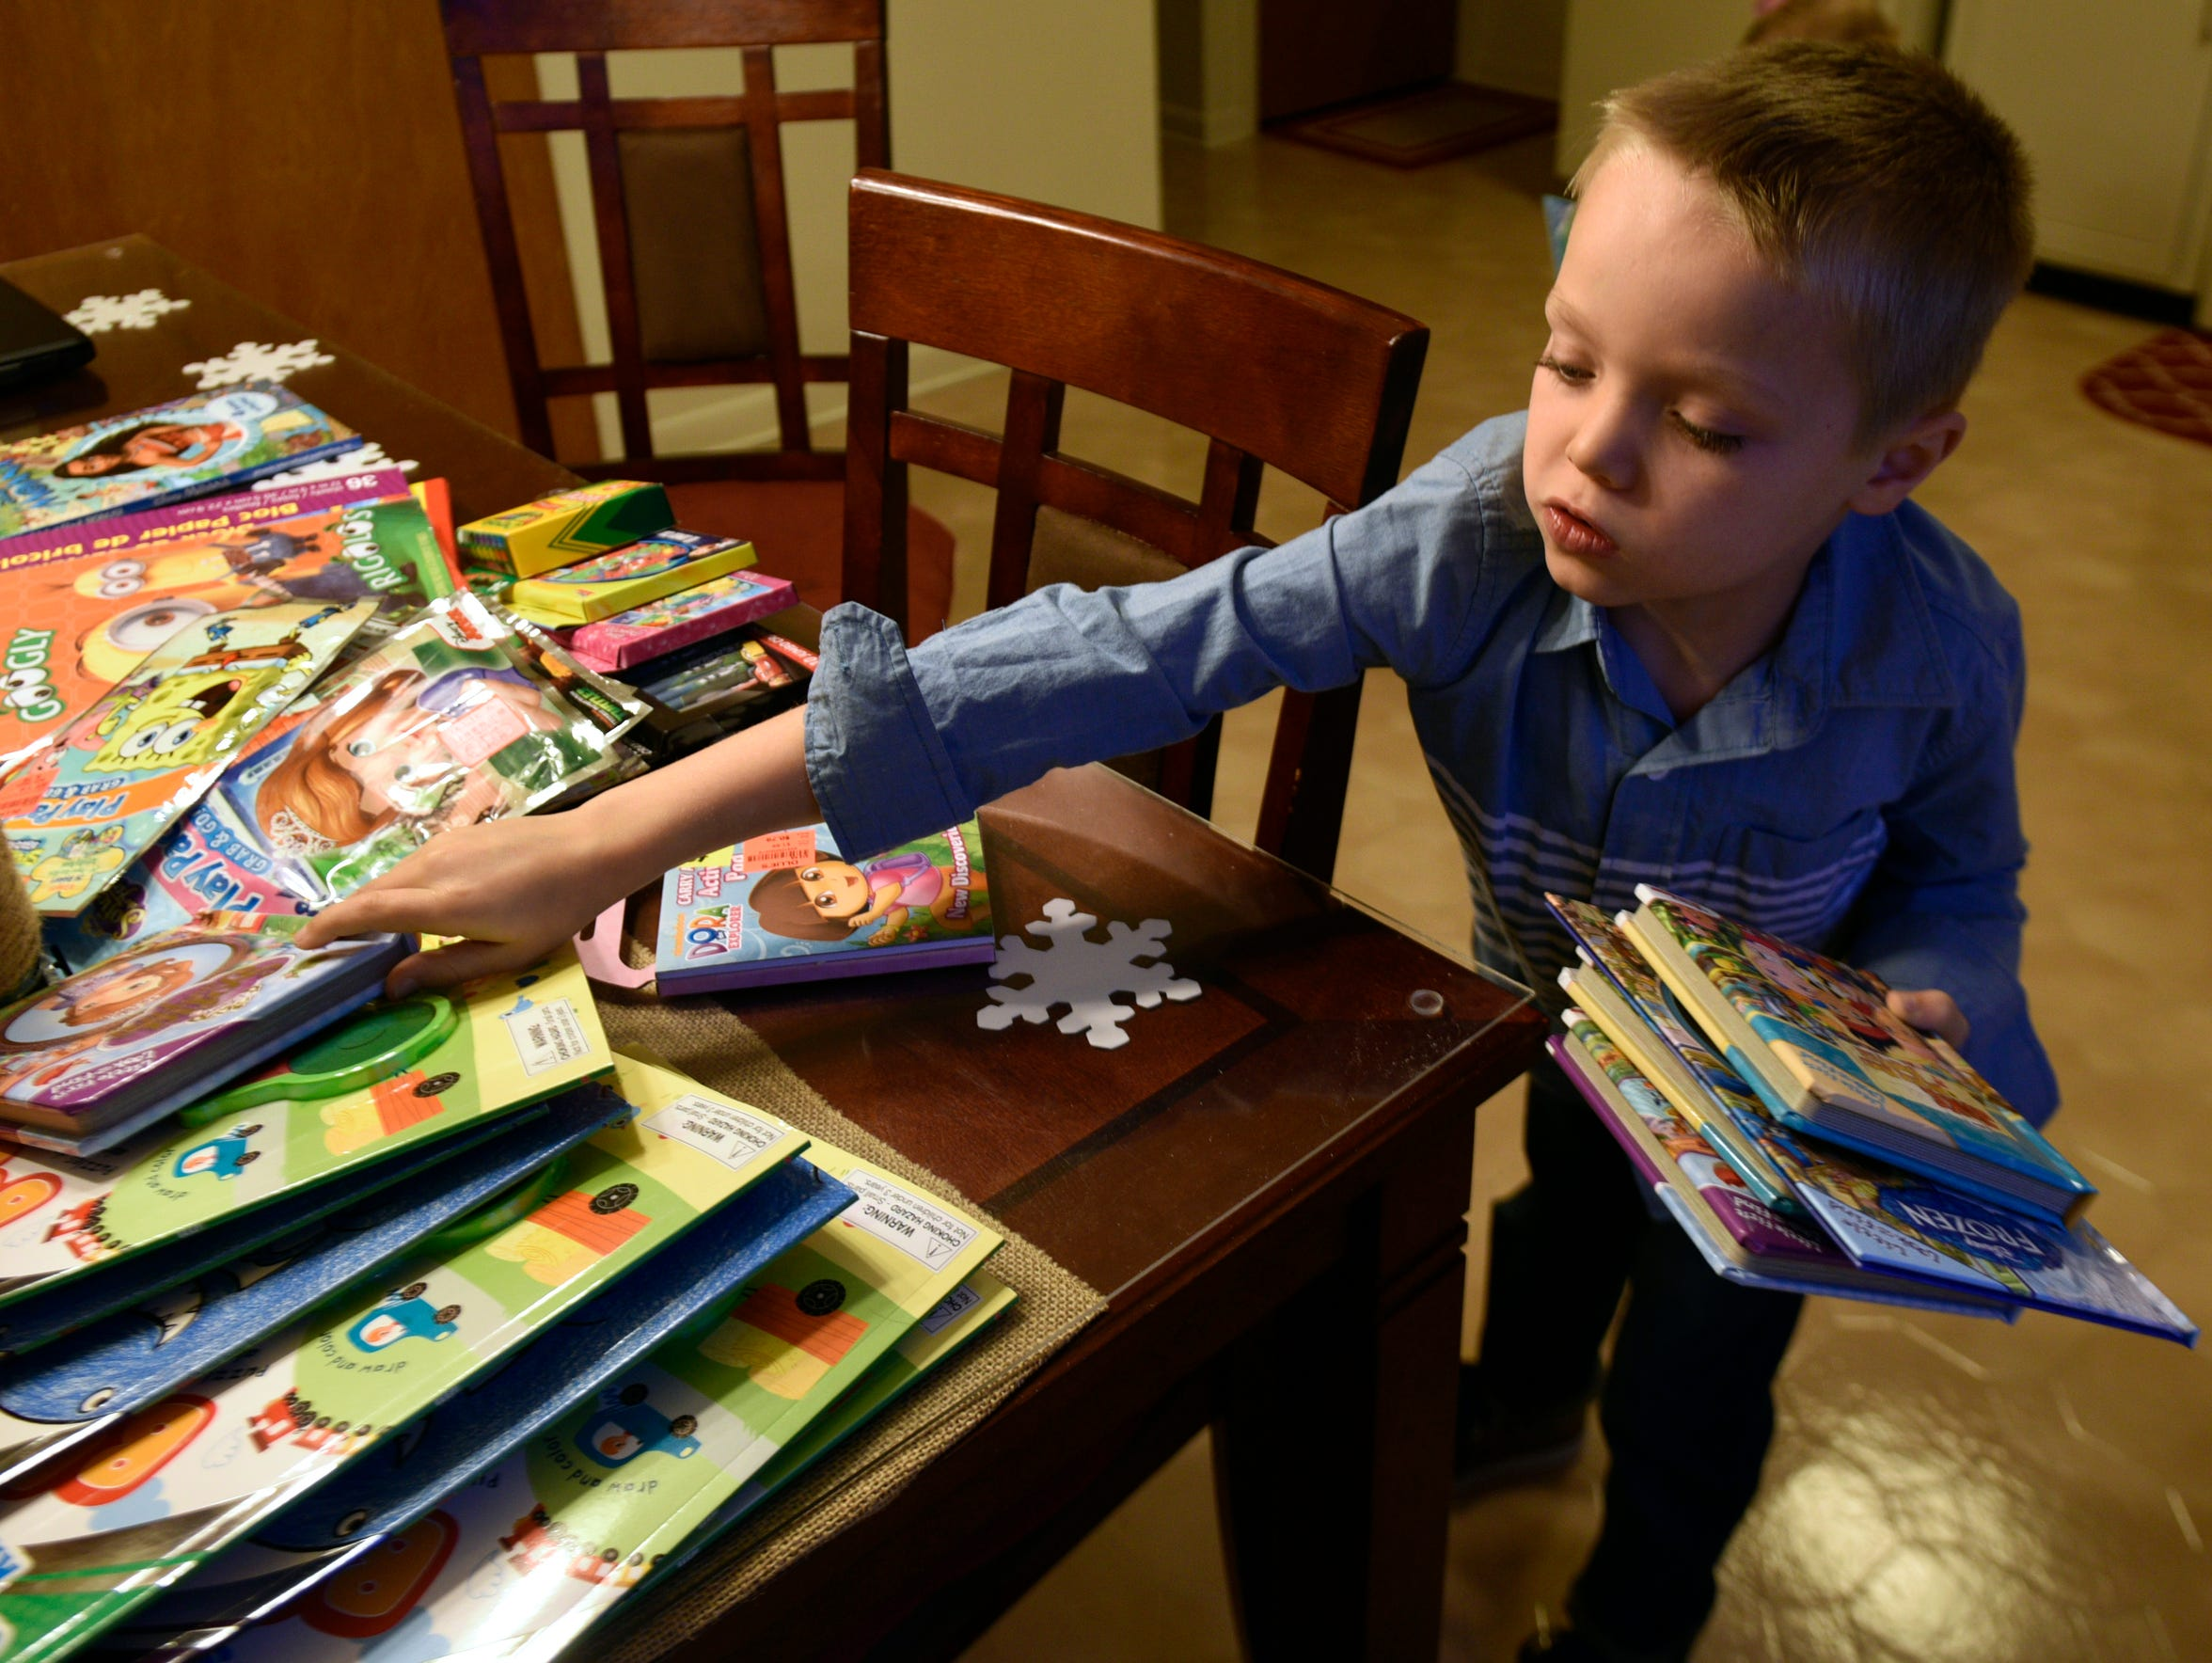 Conner Keiper, 8, goes through the books he's collected